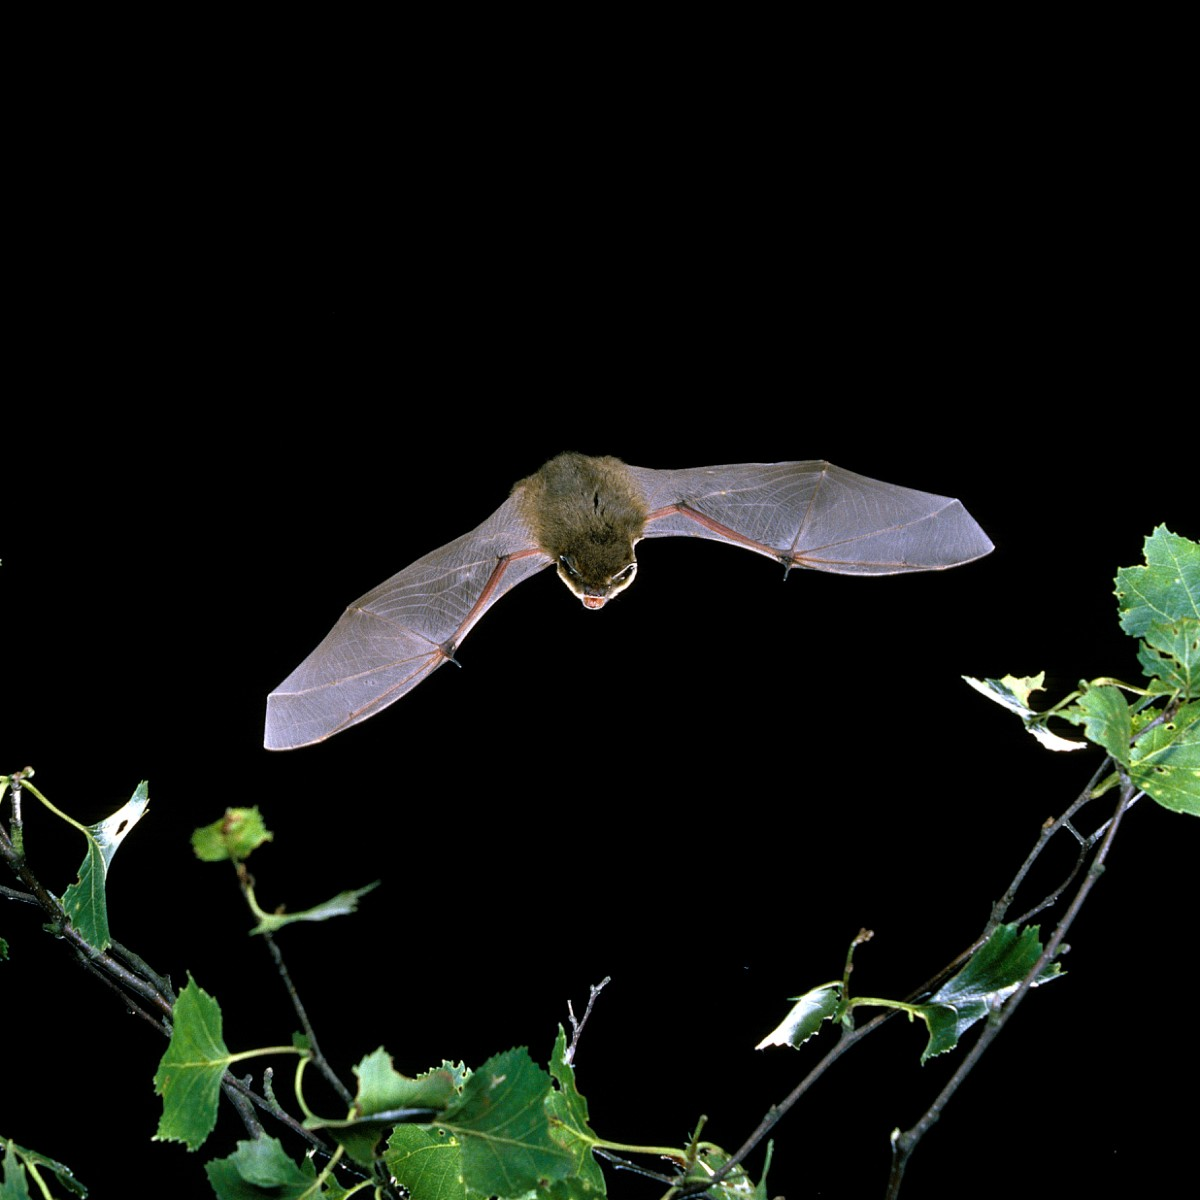 All 10 species of bats found in Scotland are protected, it's an offence to capture, injure or kill a bat.   It is also a strict liability to damage a roost, meaning being unaware of the roost is no excuse.   Visit ➡️ https://t.co/pVgrNYFvHq to find out more.  #EndWildllifeCrime https://t.co/8OyoKqlprT